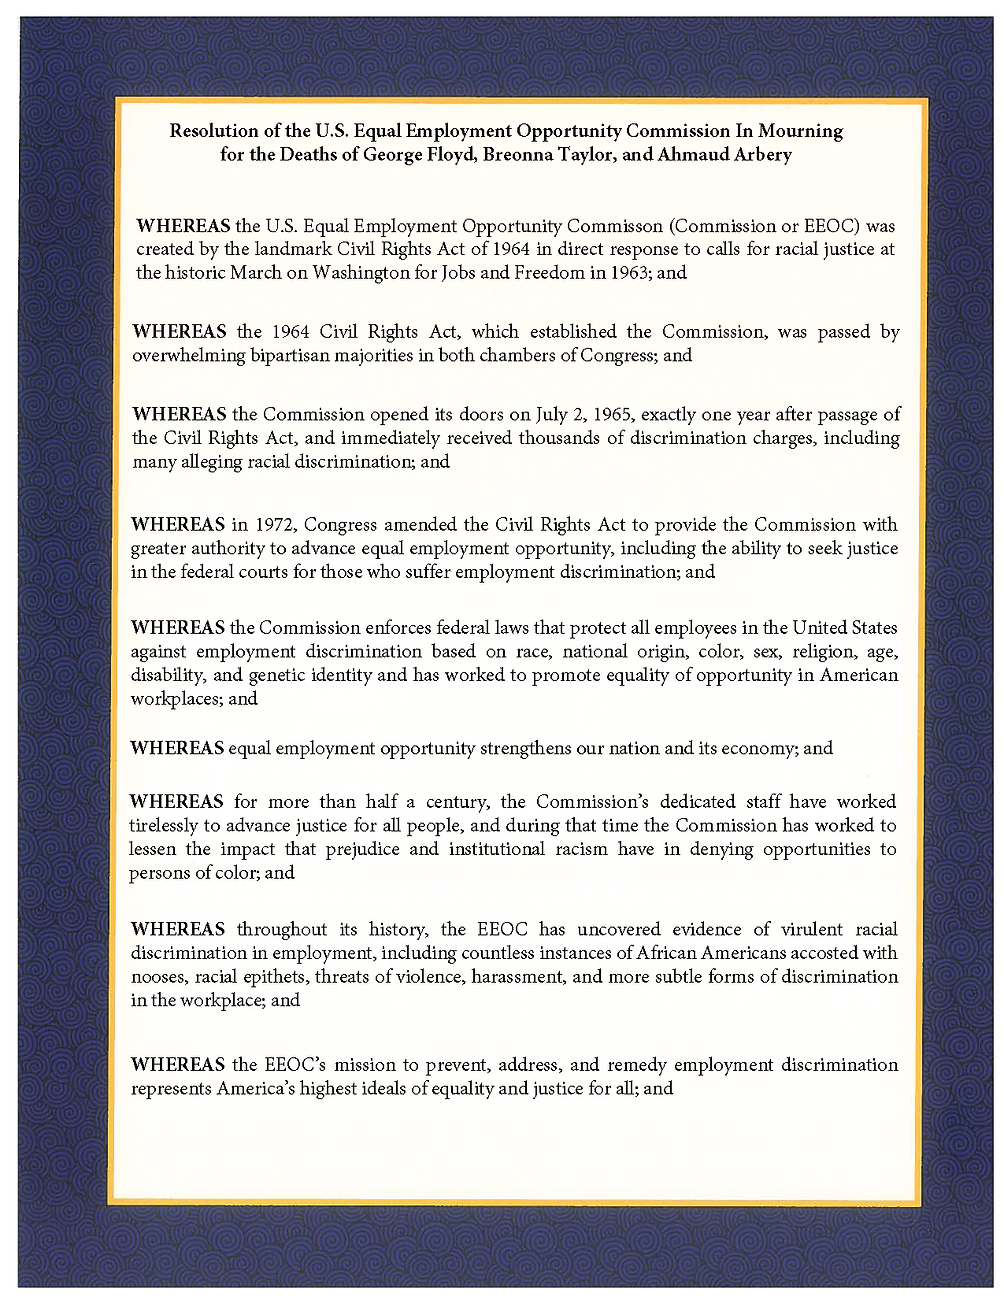 EEOC RESOLUTION FINAL (002)_Page_1.png